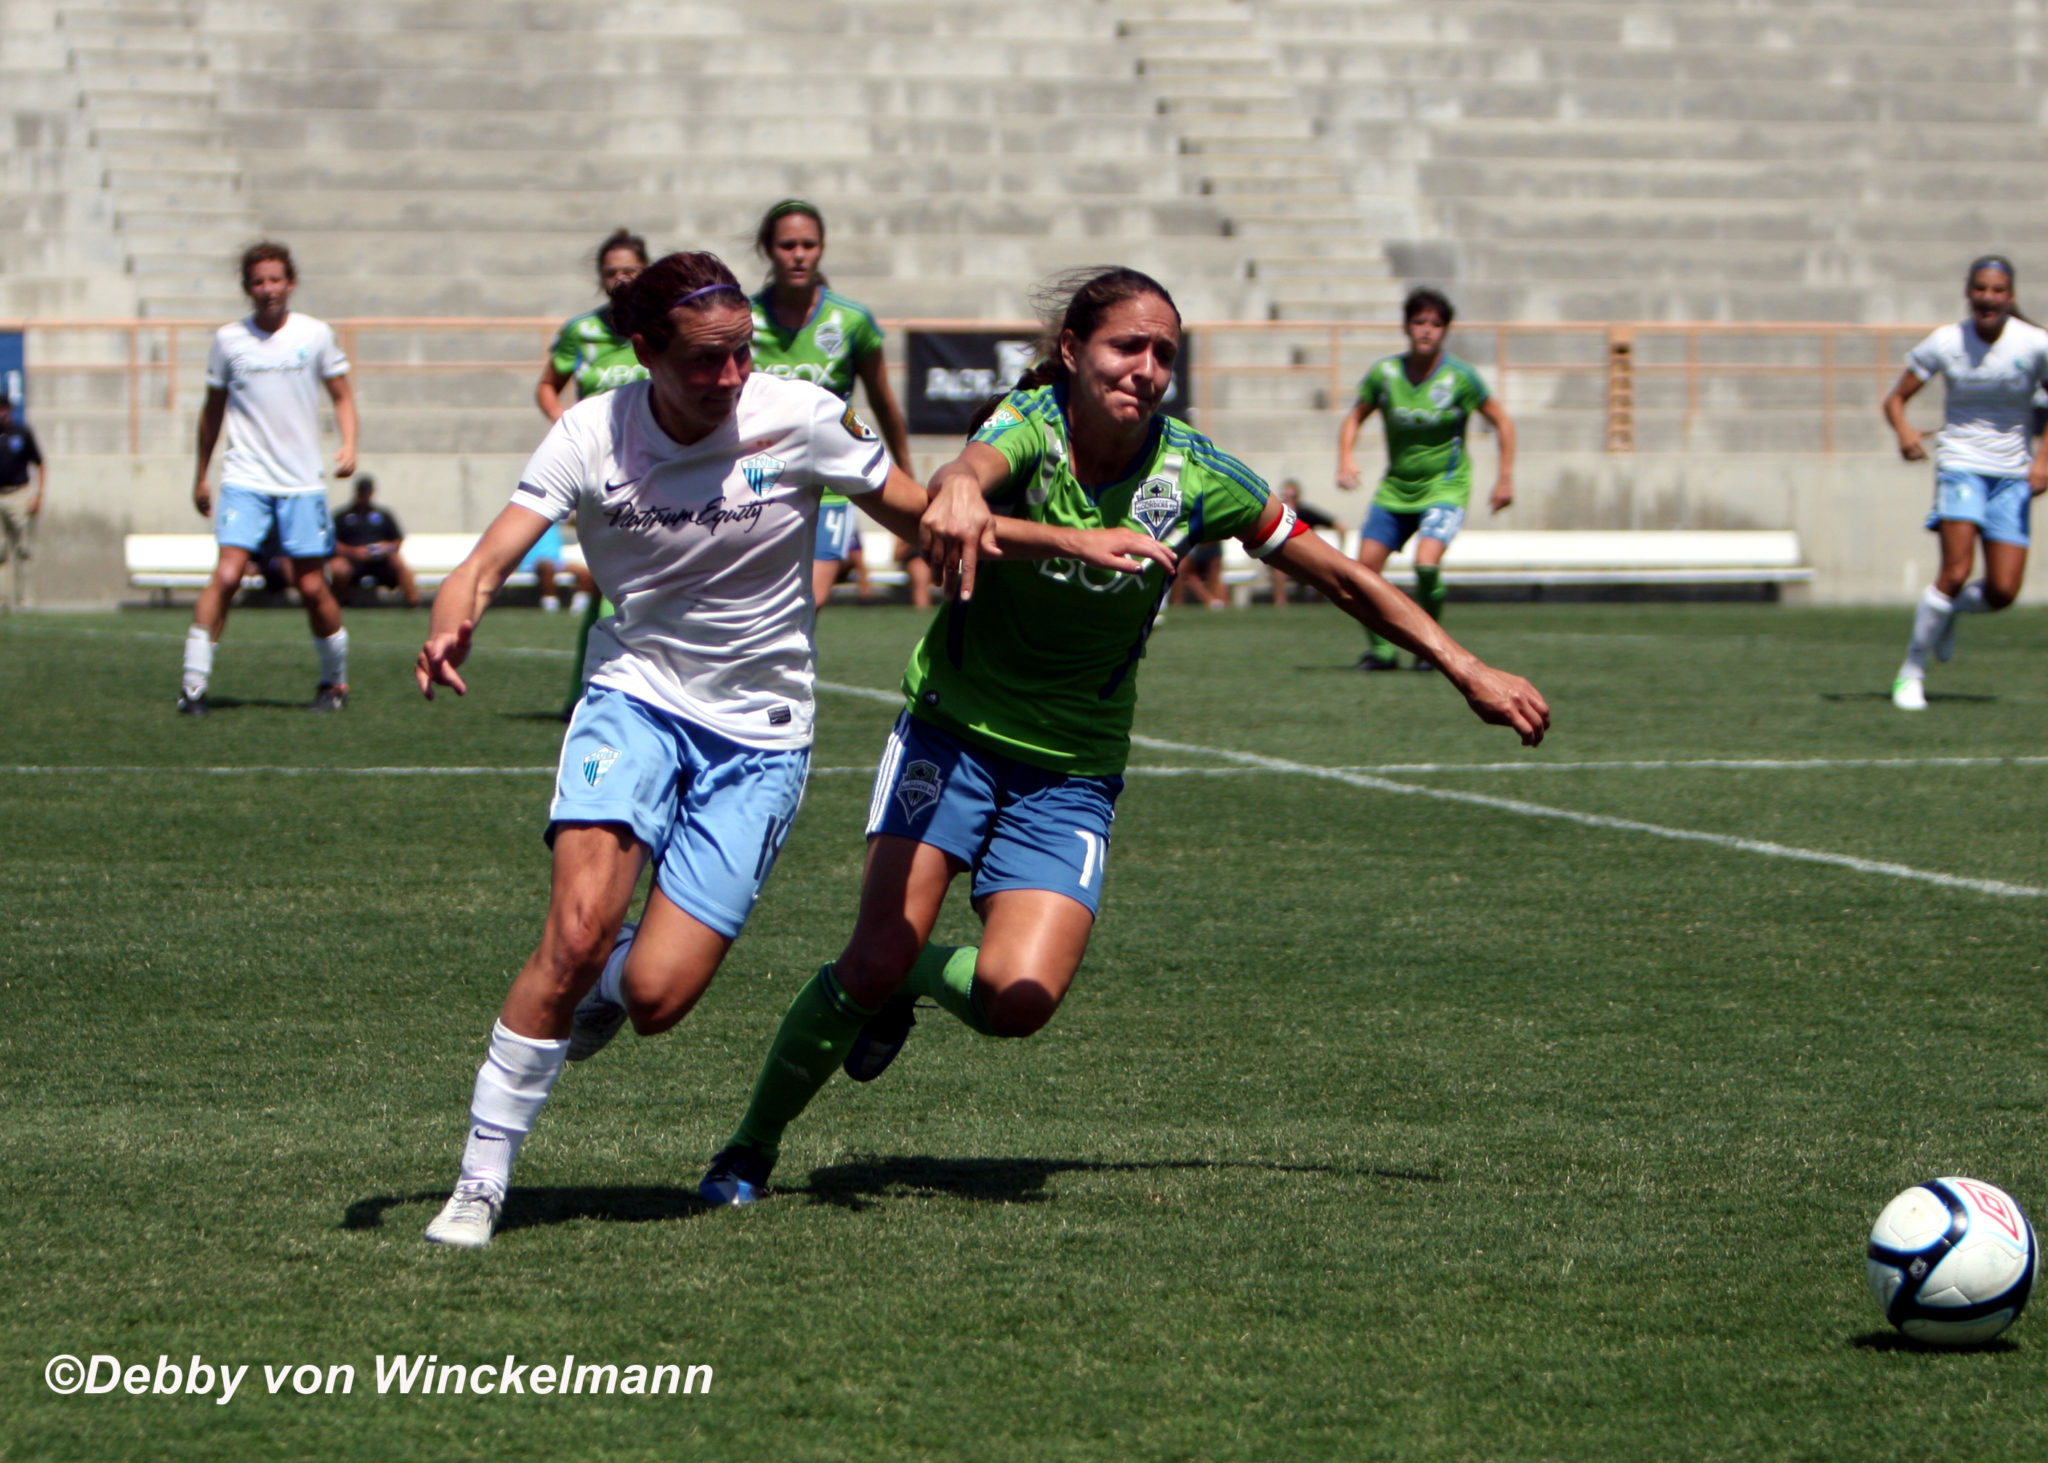 Sarah Huffman (L) and Stephanie Cox (R) fight for possession on Sunday in Pali's 1-0 win against Seattle for the Western Conference Championship at Titan Stadium. (Photo Copyright: Debby von Winckelmann)